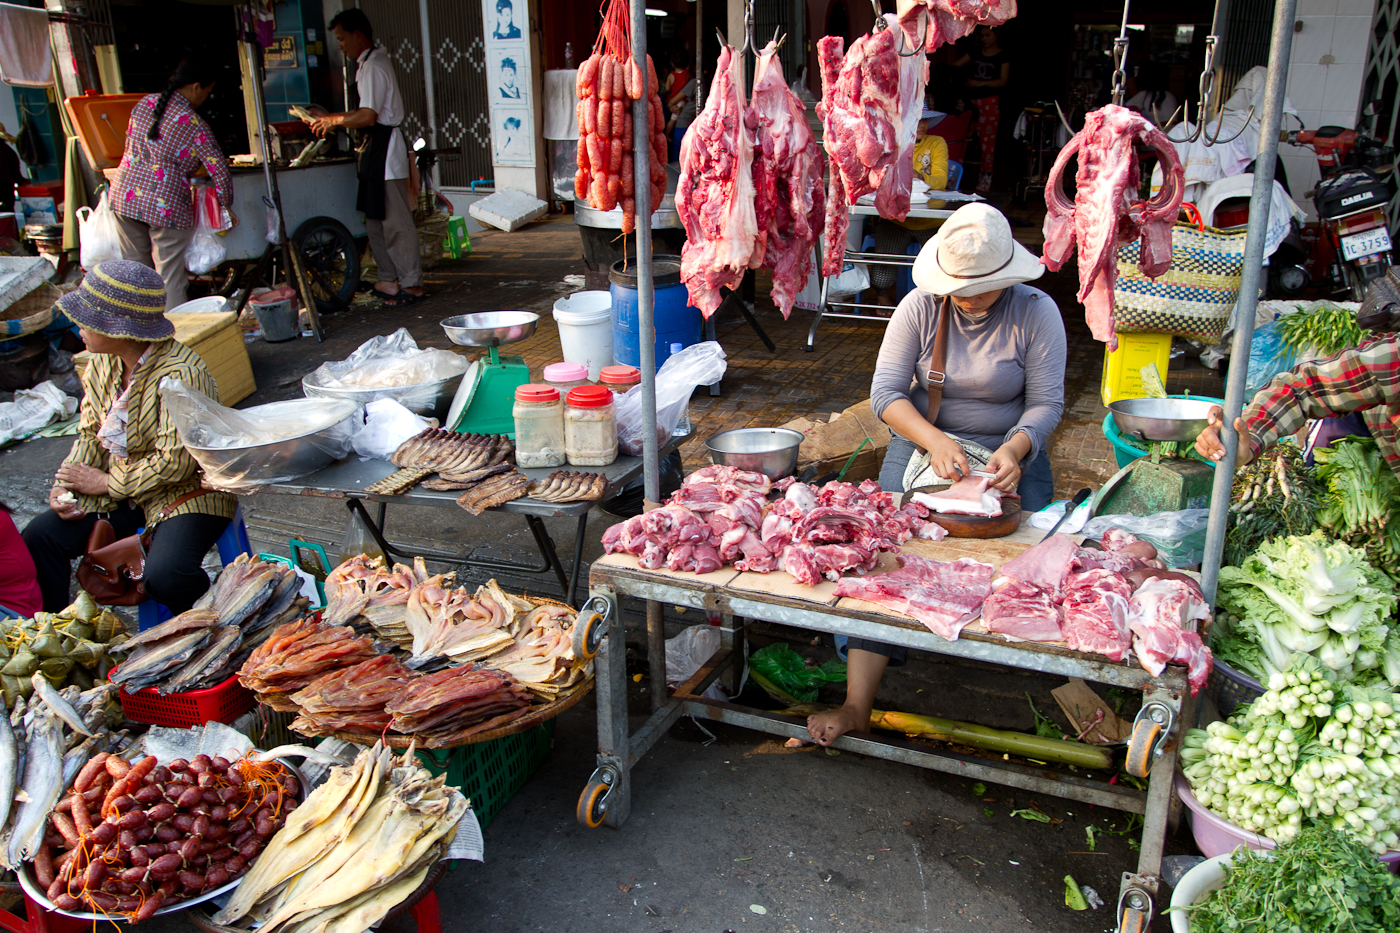 Women were not on sale at this meat market.